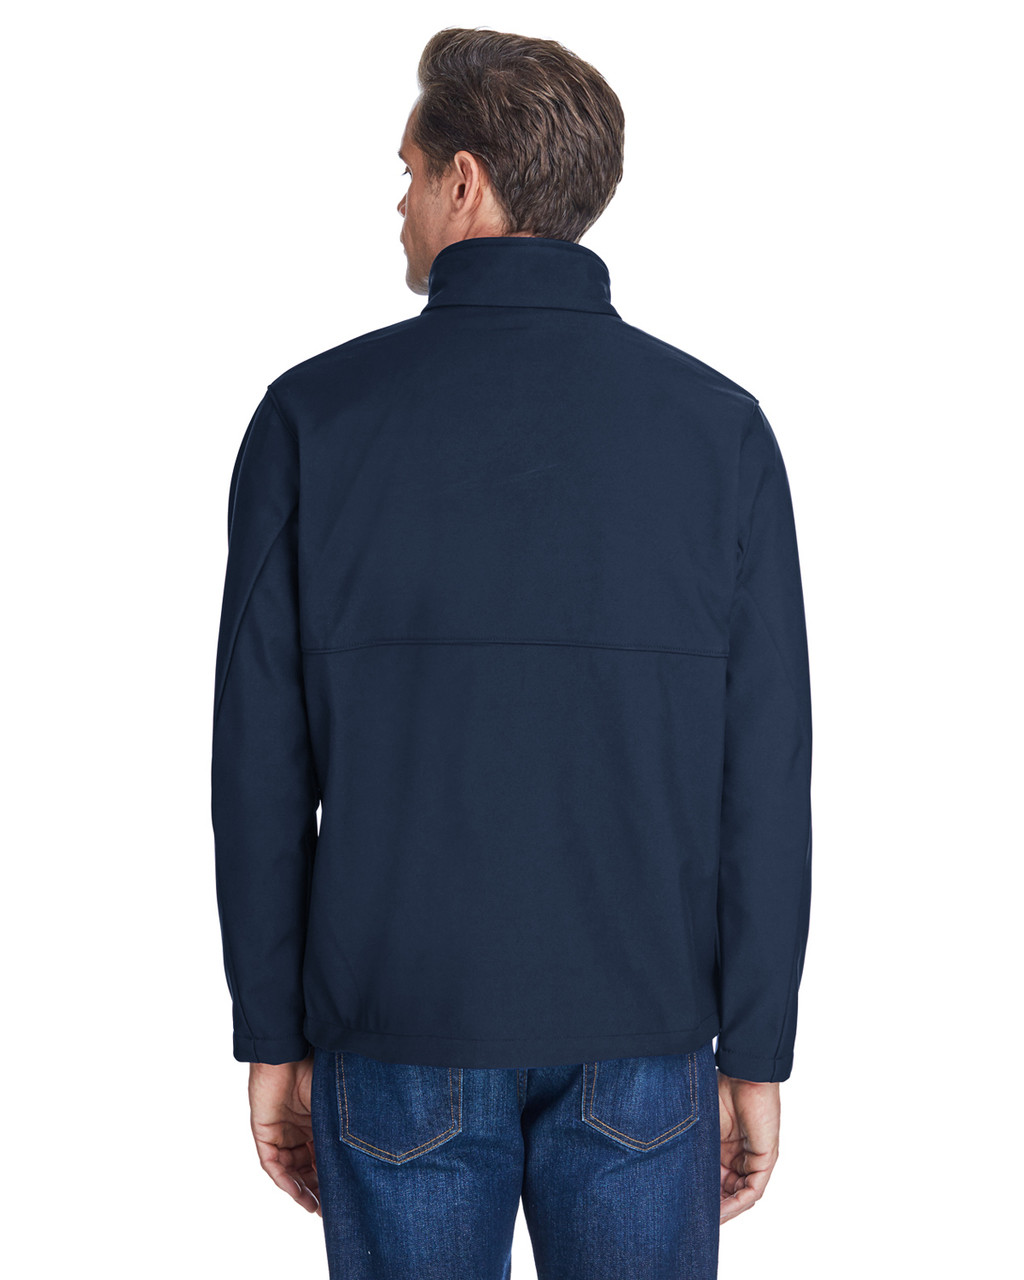 Collegiate Navy -Back  C6044 Columbia Men's Ascender™ Soft Shell Jacket | BlankClothing.ca